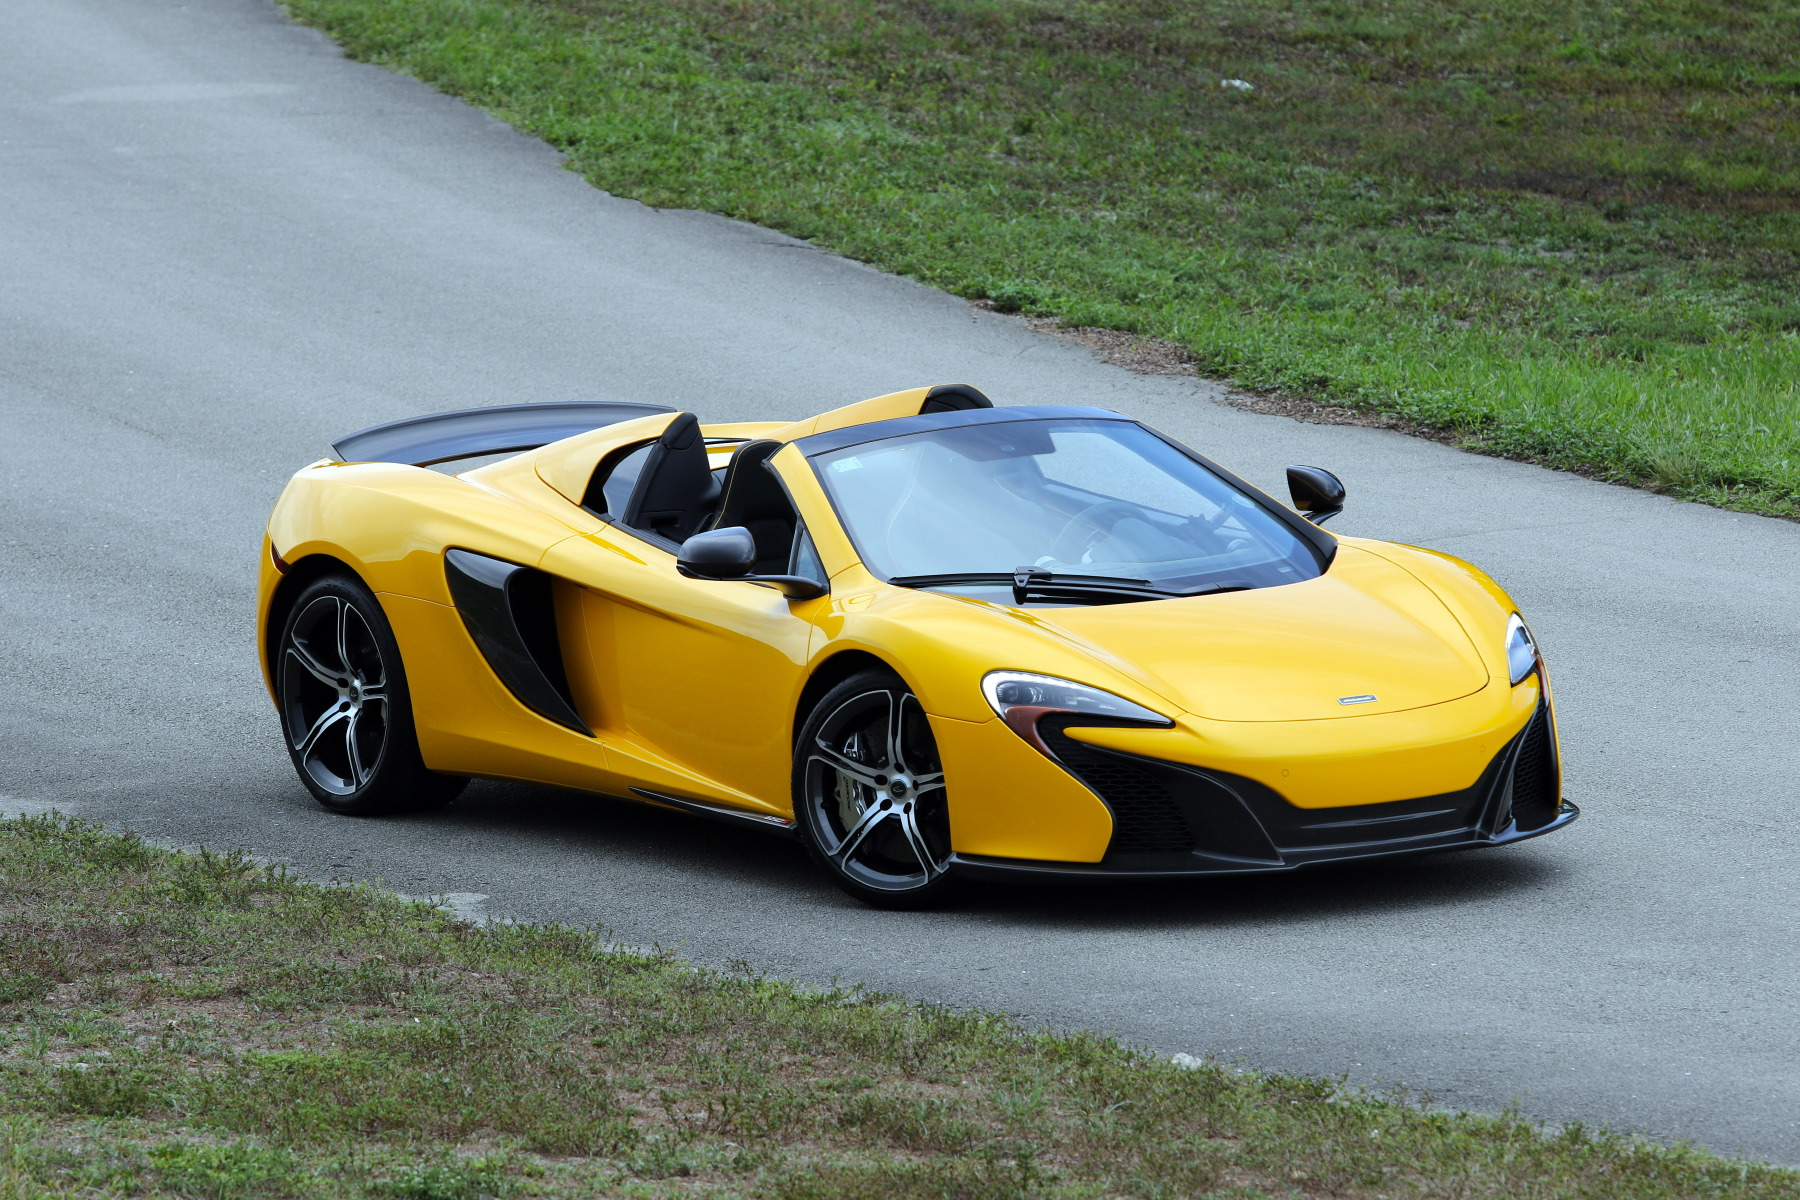 2015 mclaren 650s spider volcano yellow picture gallery drag racing fast cars. Black Bedroom Furniture Sets. Home Design Ideas